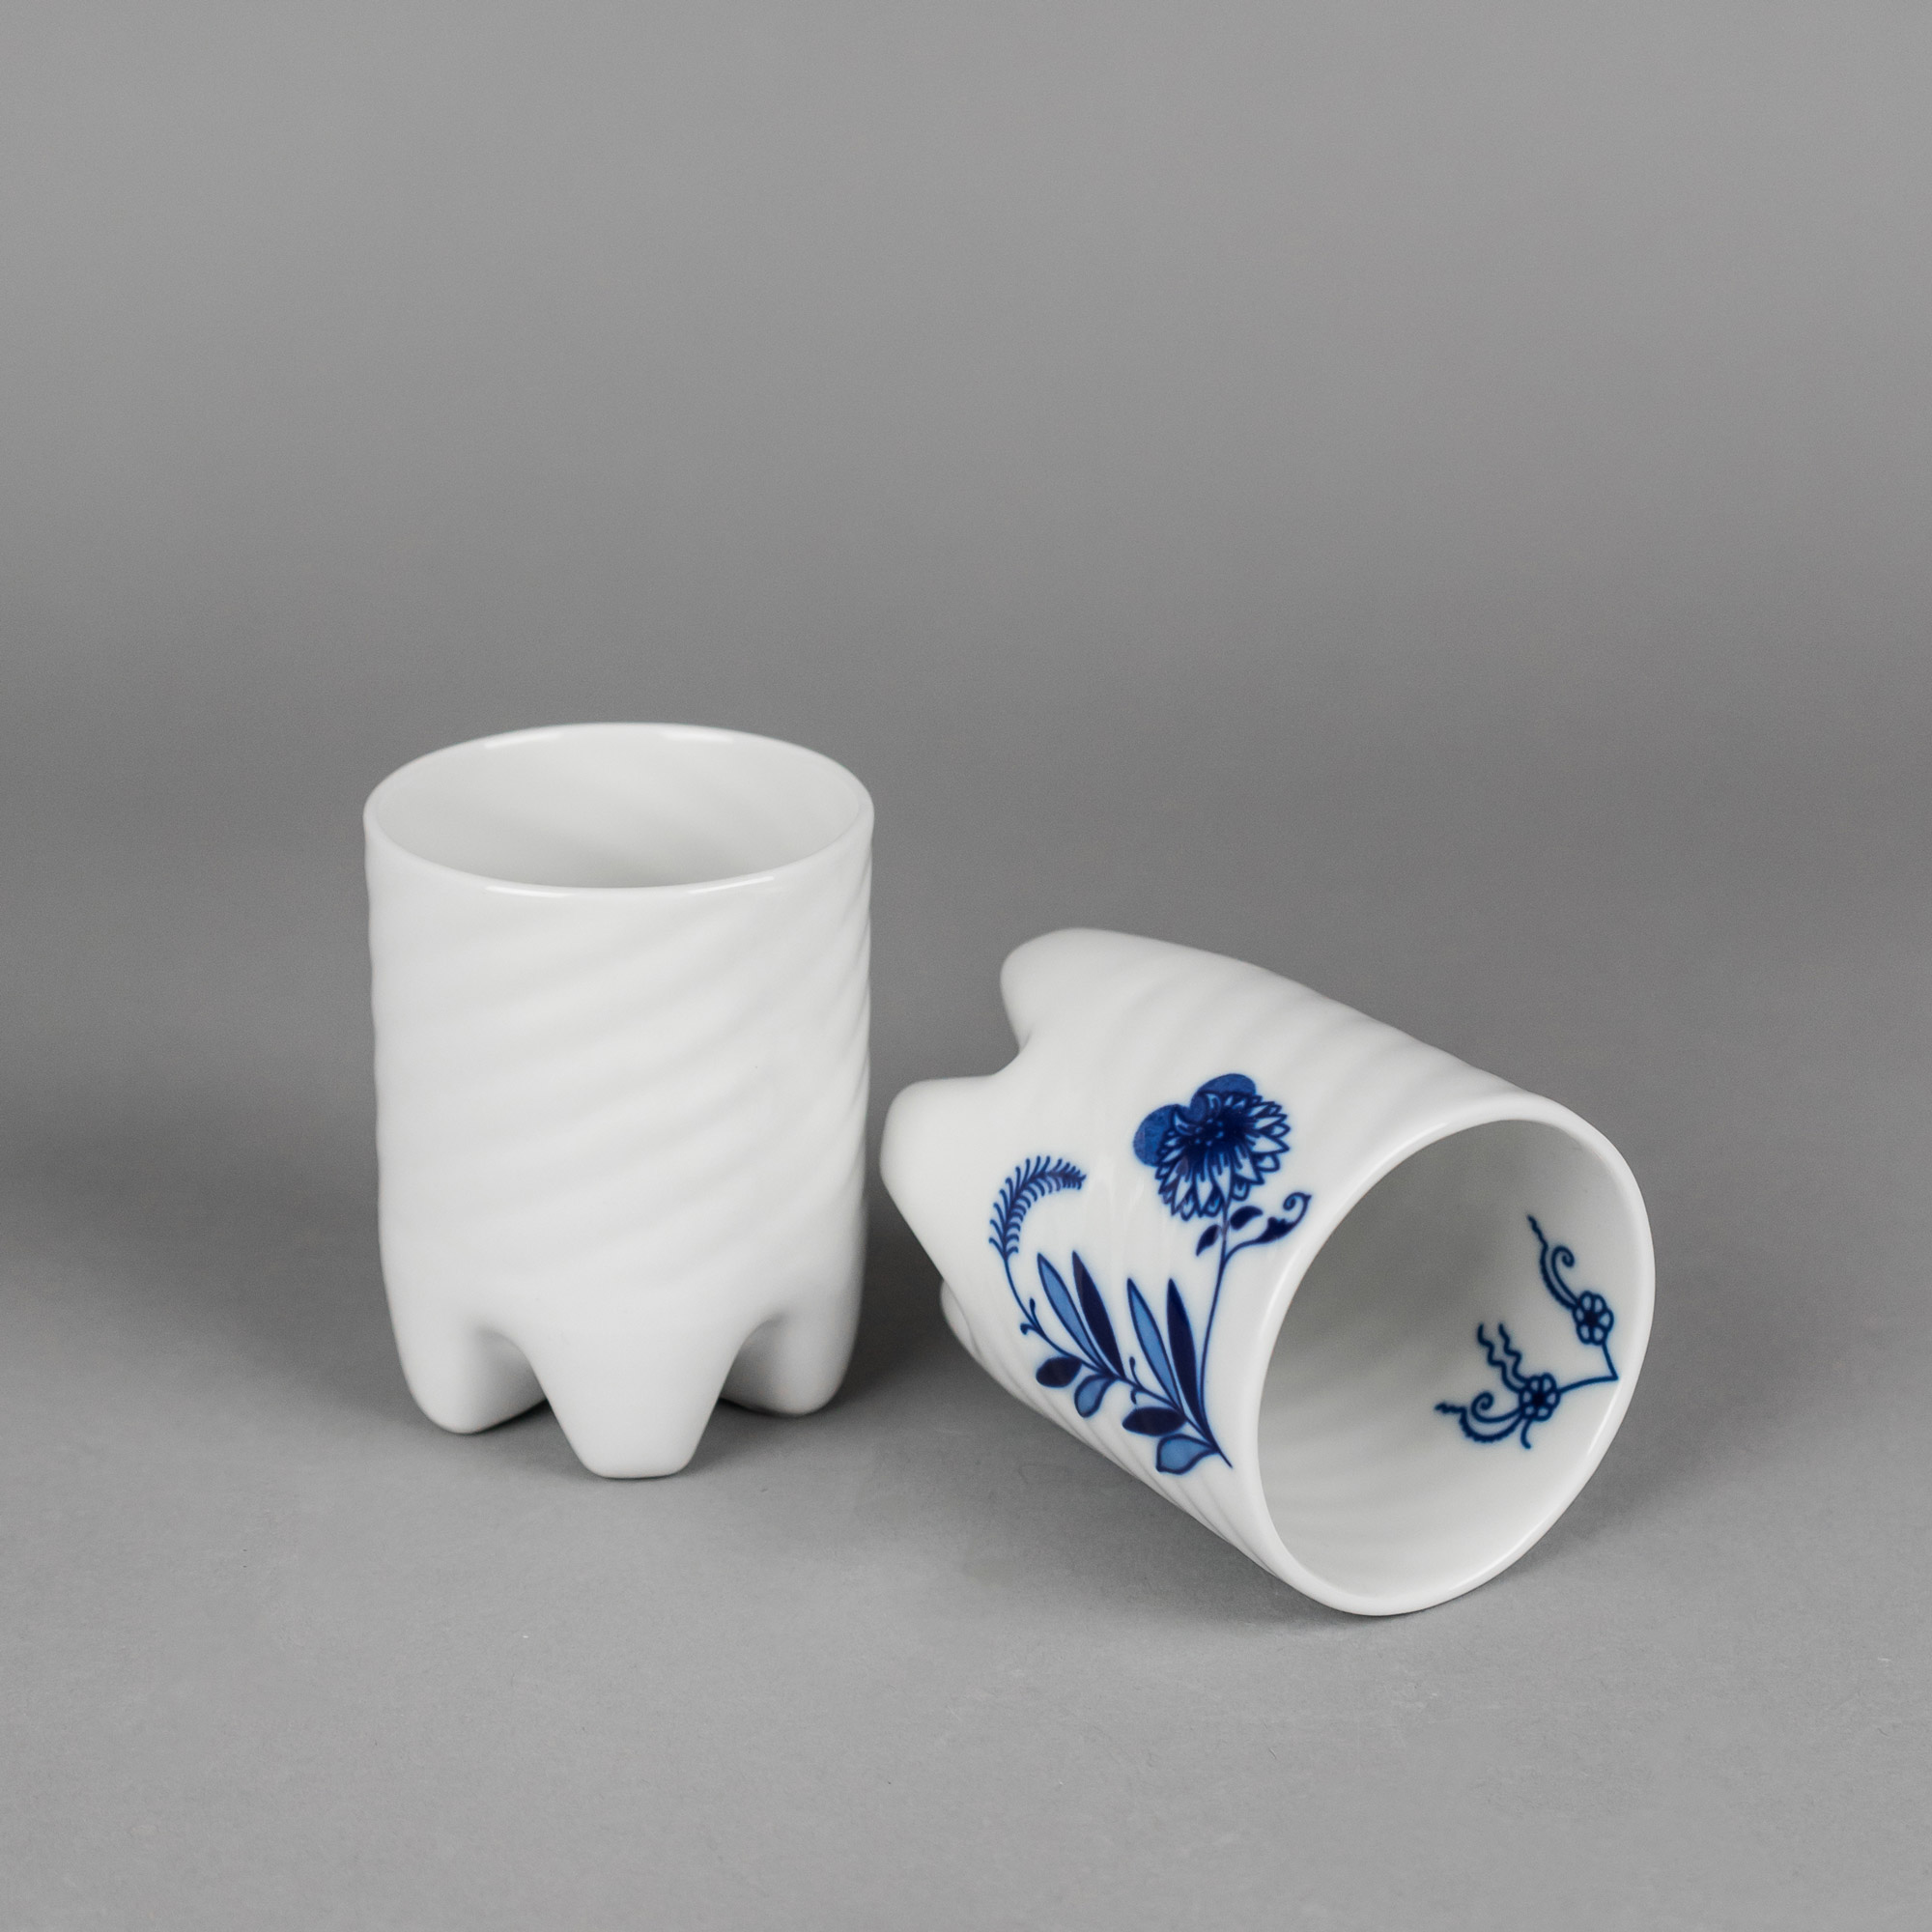 White and onion pattern porcelain cup on grey background by Qubus design studio